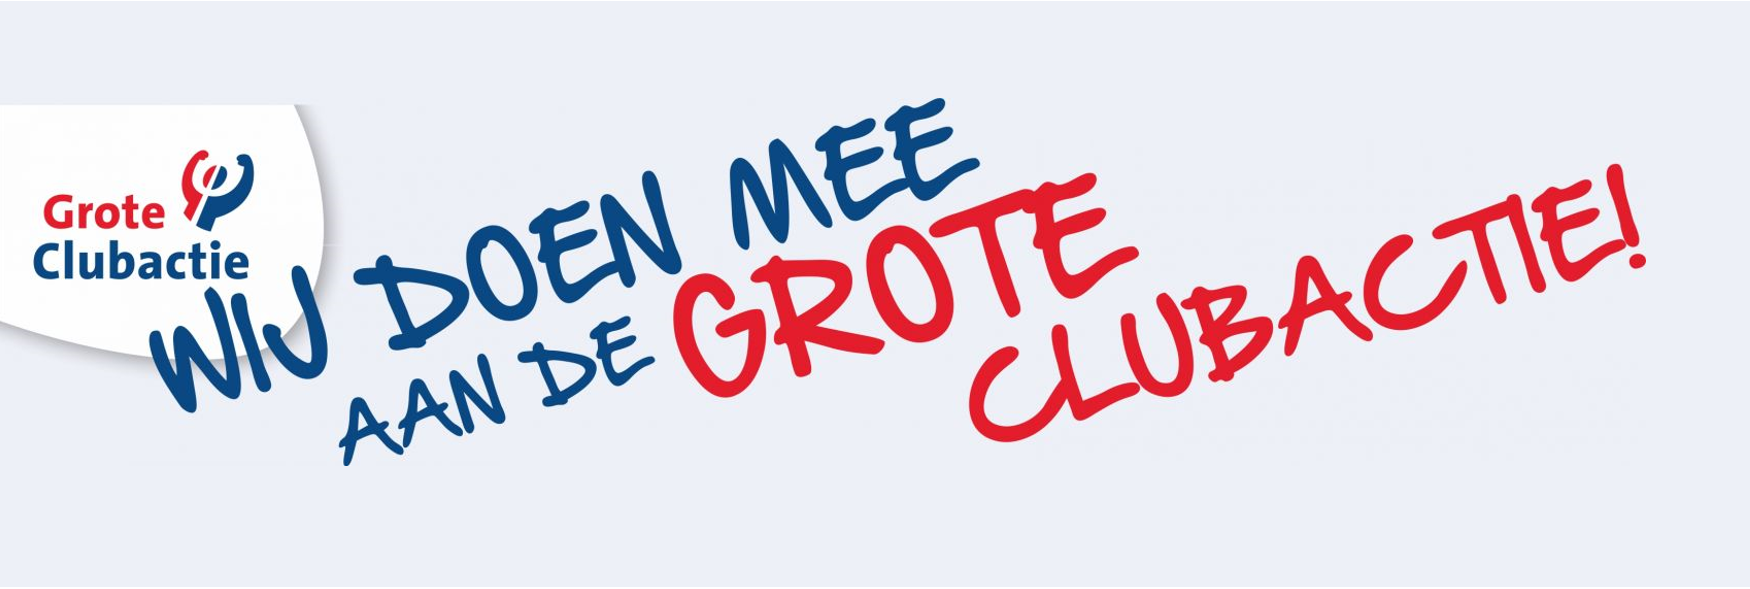 Permalink to: Grote Clubactie